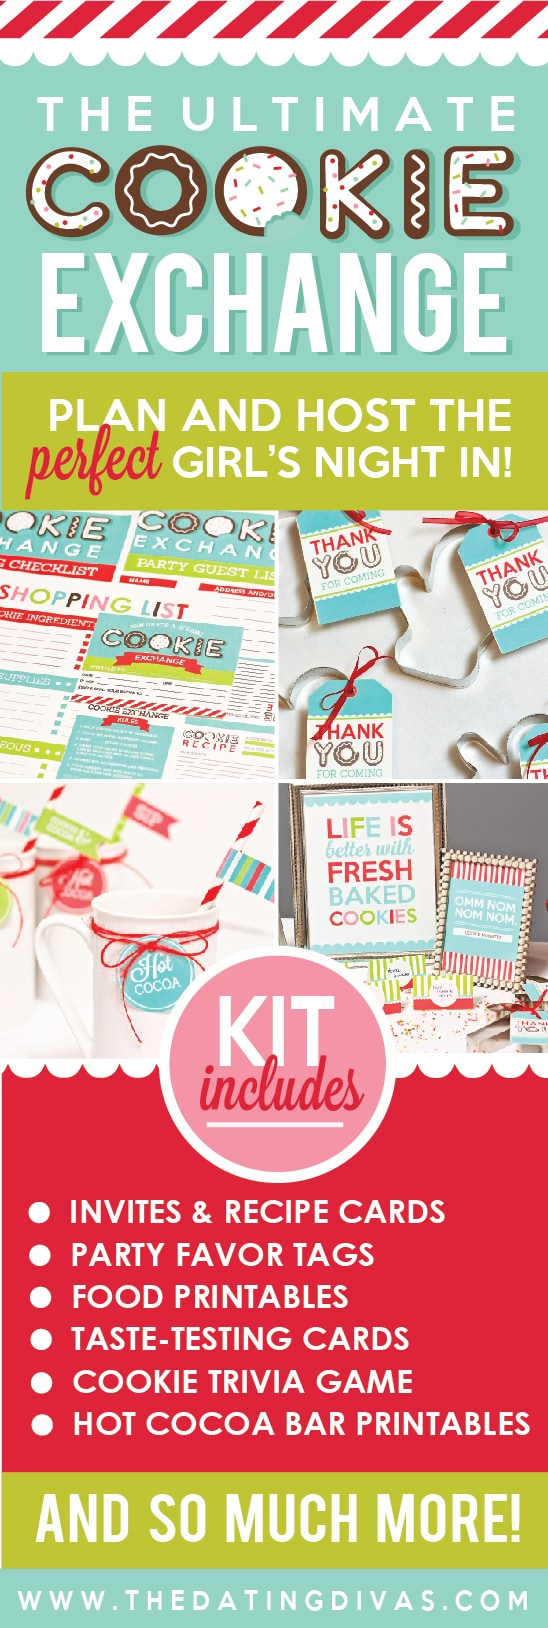 Cookie exchange printable pack with everything you need to host the perfect party! #TheDatingDivas #CookieExchange